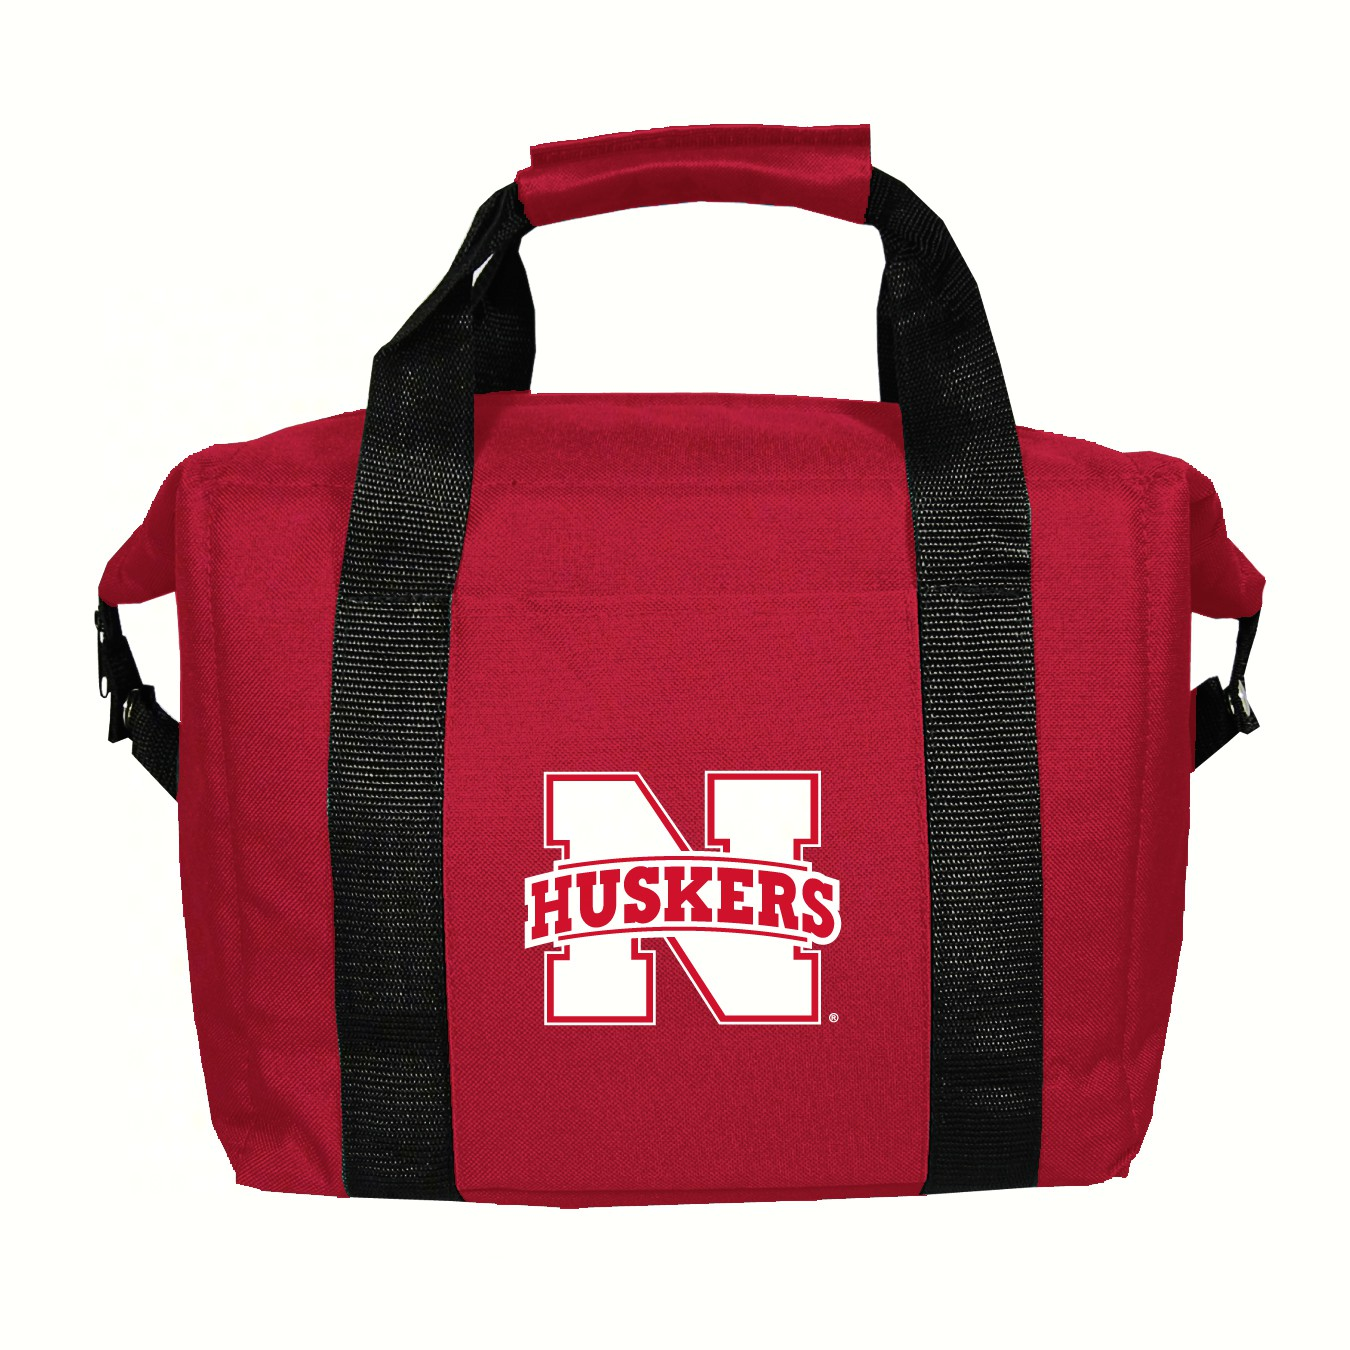 Kooler Bag Nebraska Cornhuskers (Holds a 12 pack)